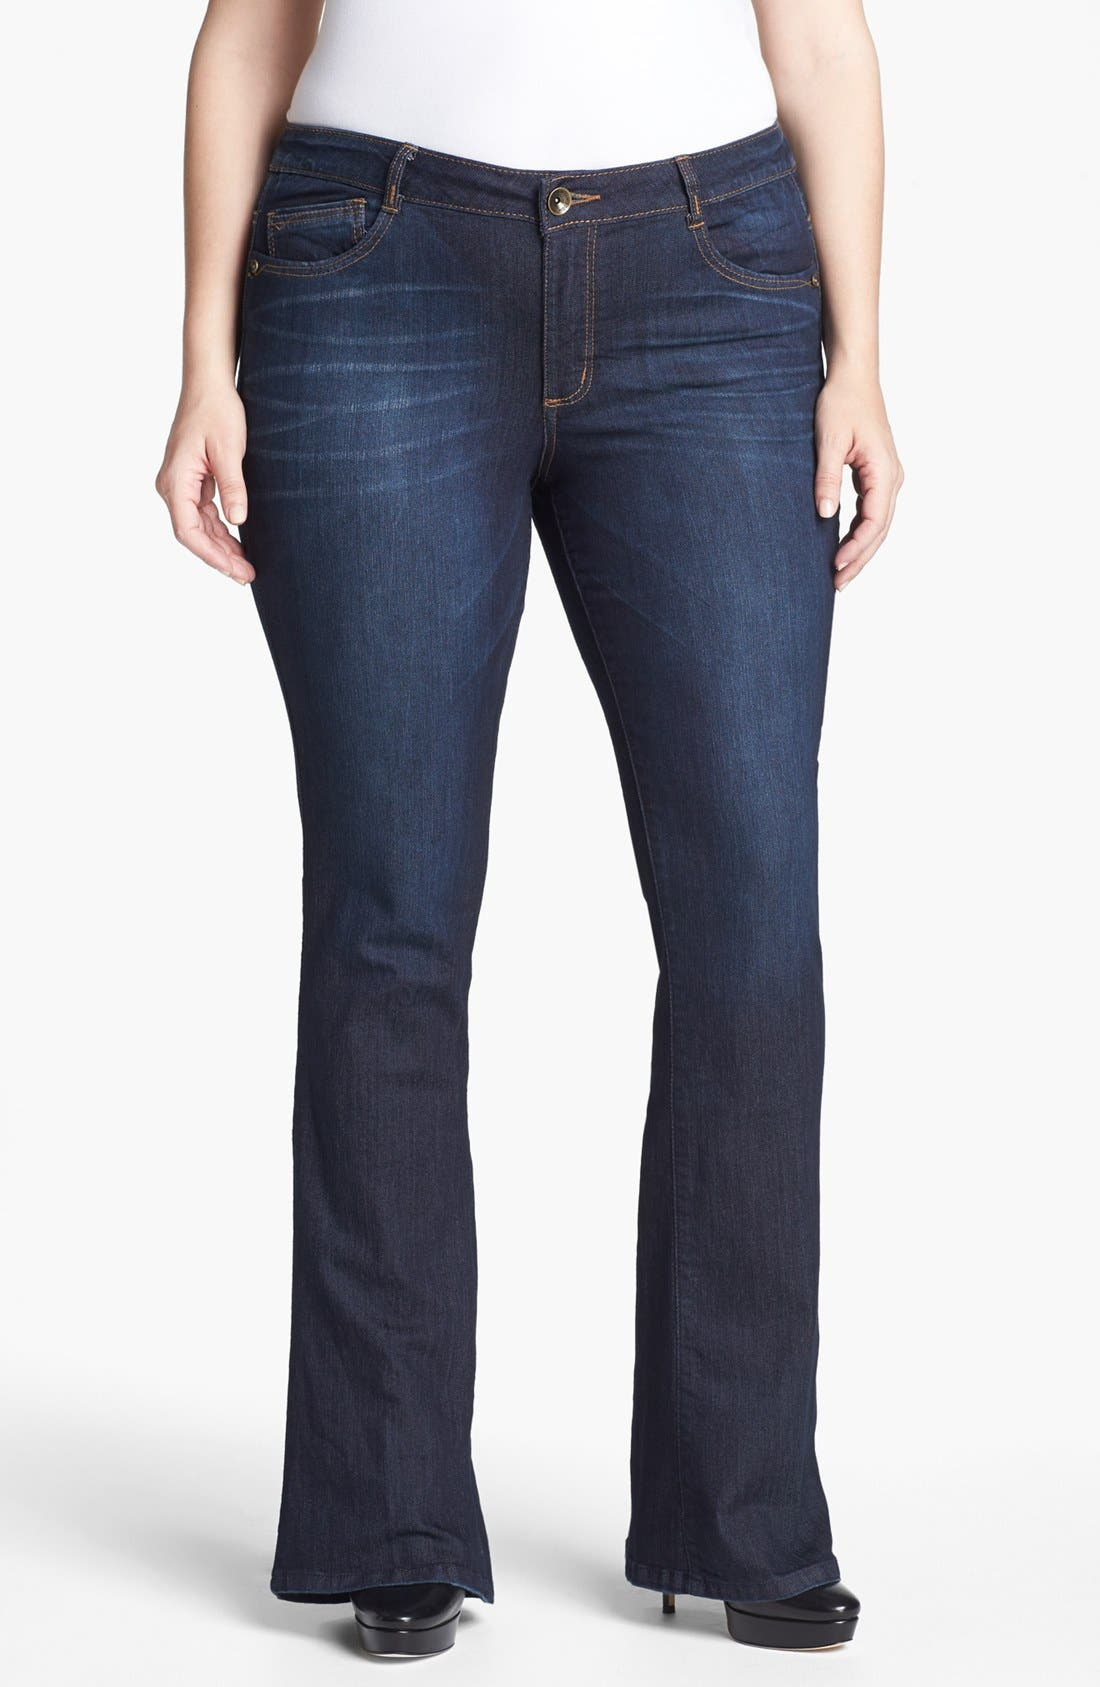 Alternate Image 1 Selected - Wit & Wisdom 'Itty Bitty' Bootcut Jeans (Plus Size) (Nordstrom Exclusive)